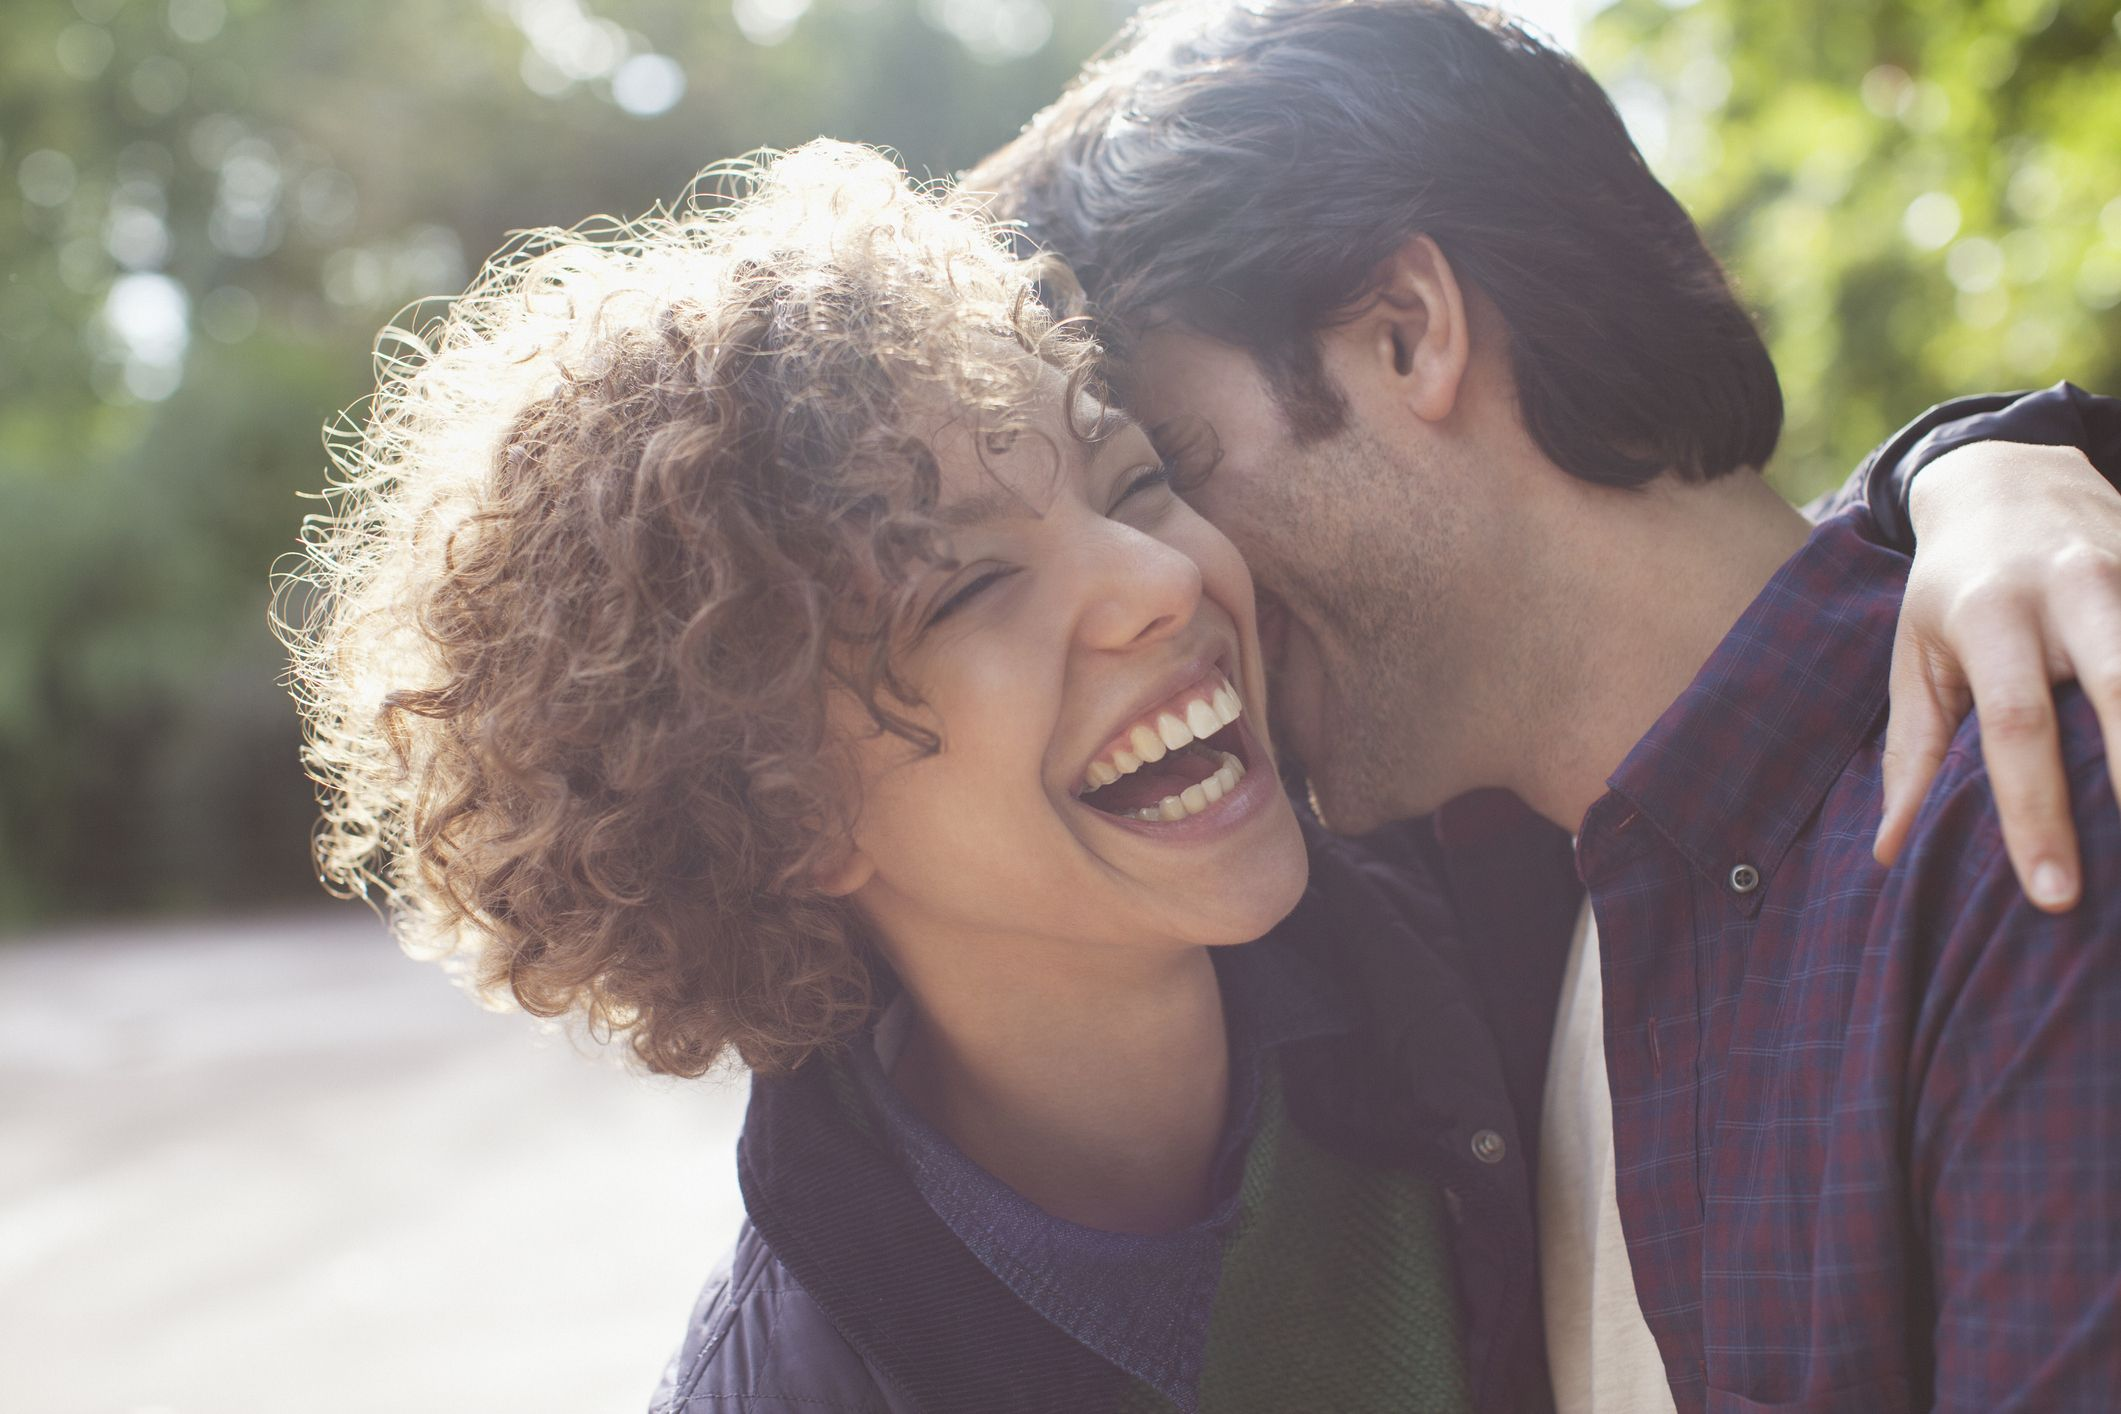 11 signs you're in love